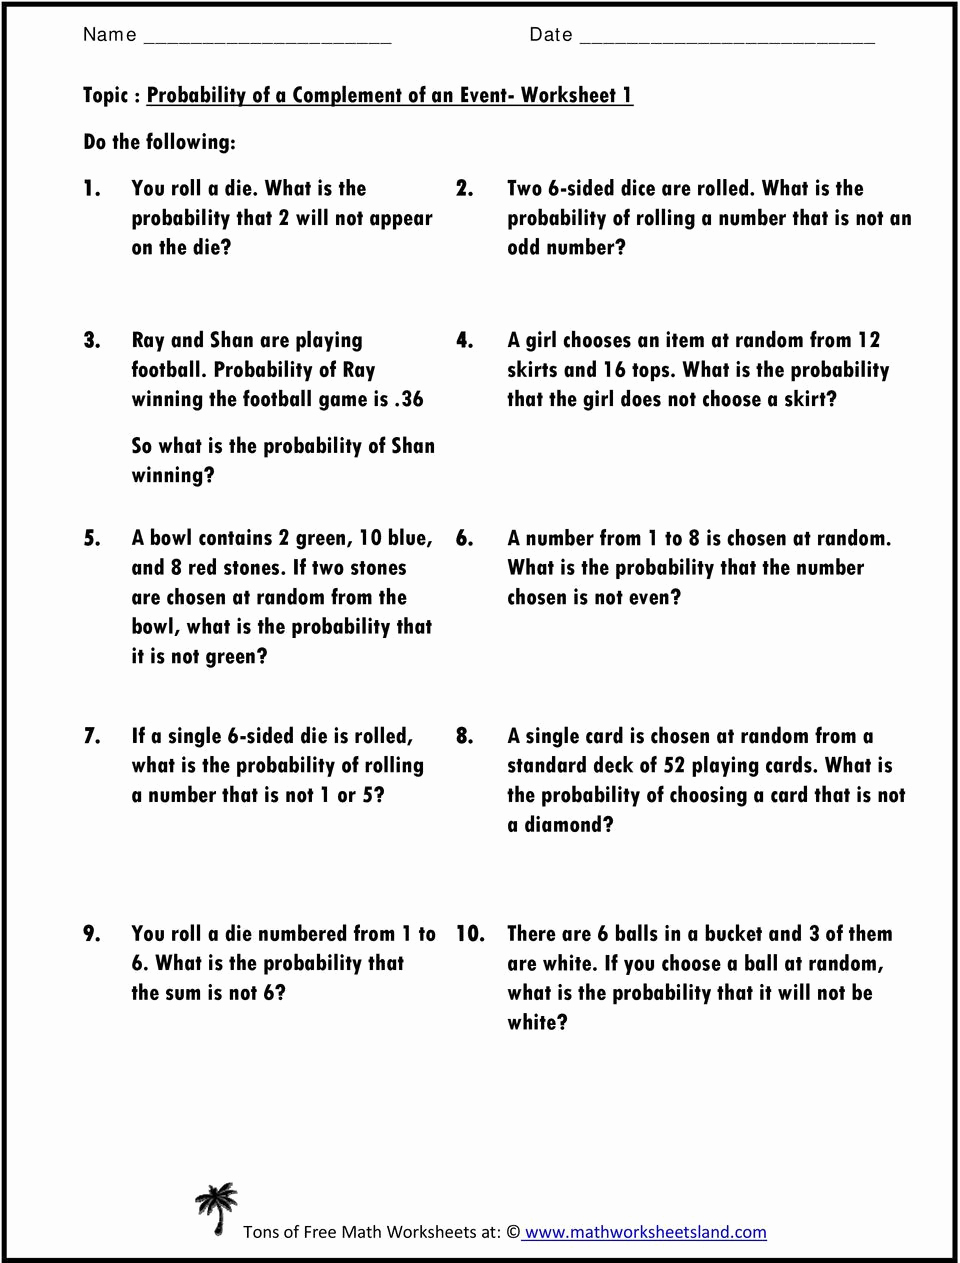 Probability Worksheets High School Pdf Awesome 20 Probability Worksheets High School Pdf